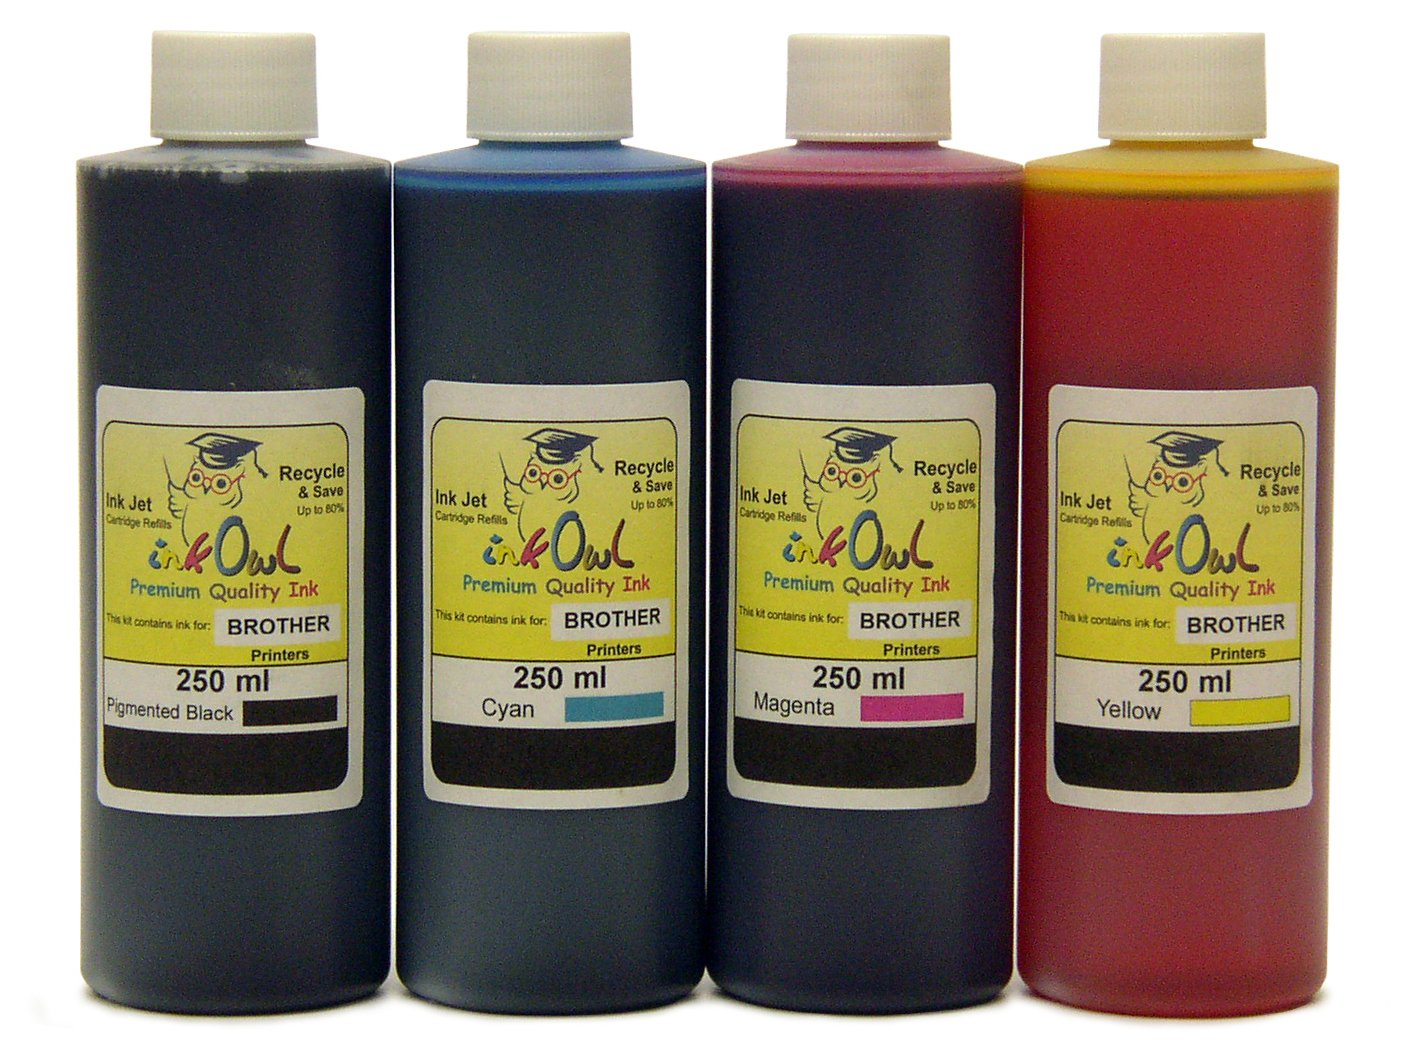 Amazon.com: 4 x 250ml inkowl tinta para Brother – fabricado ...